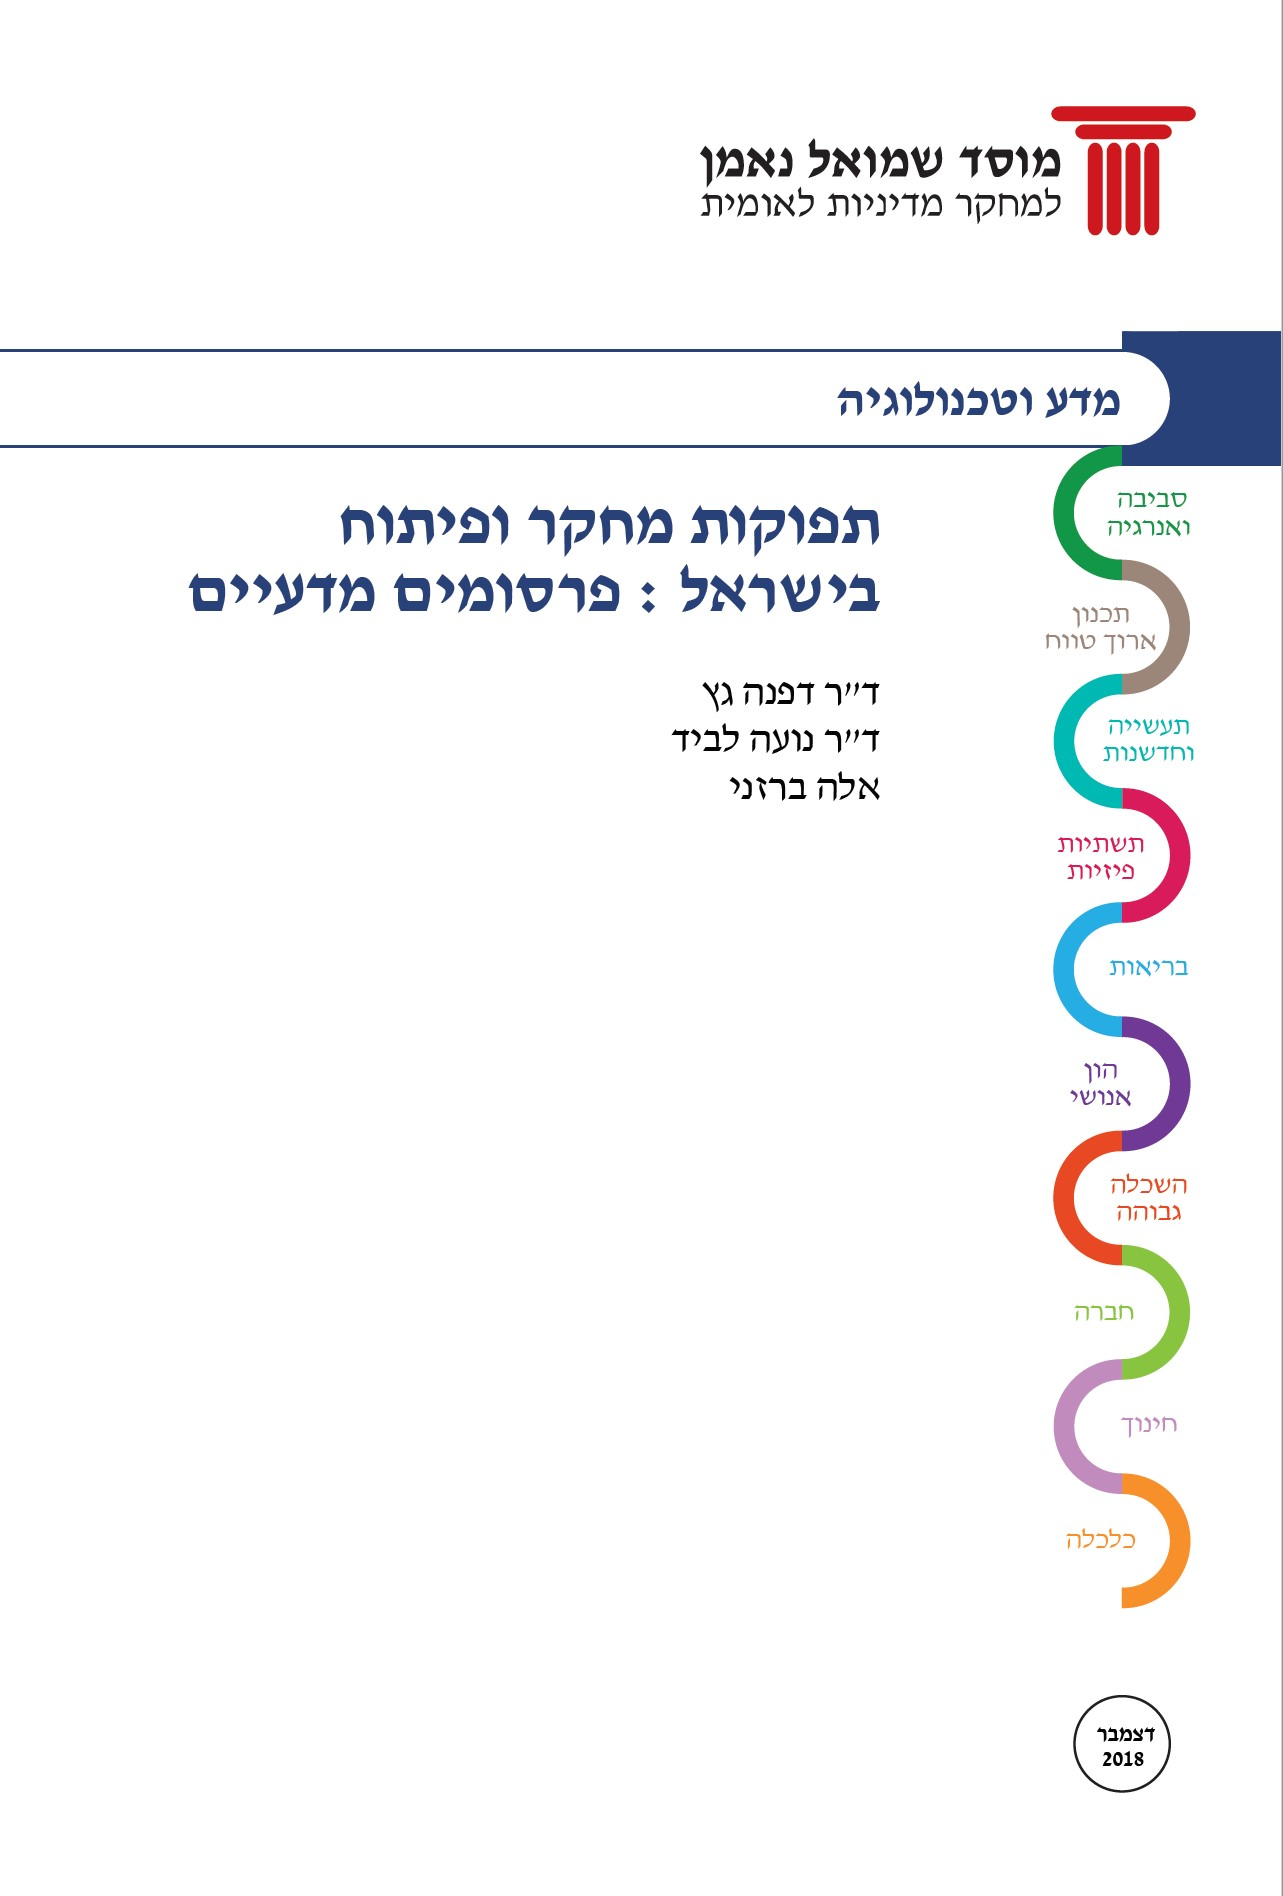 R&D Outputs in Israel  Analysis of Scientific Publications